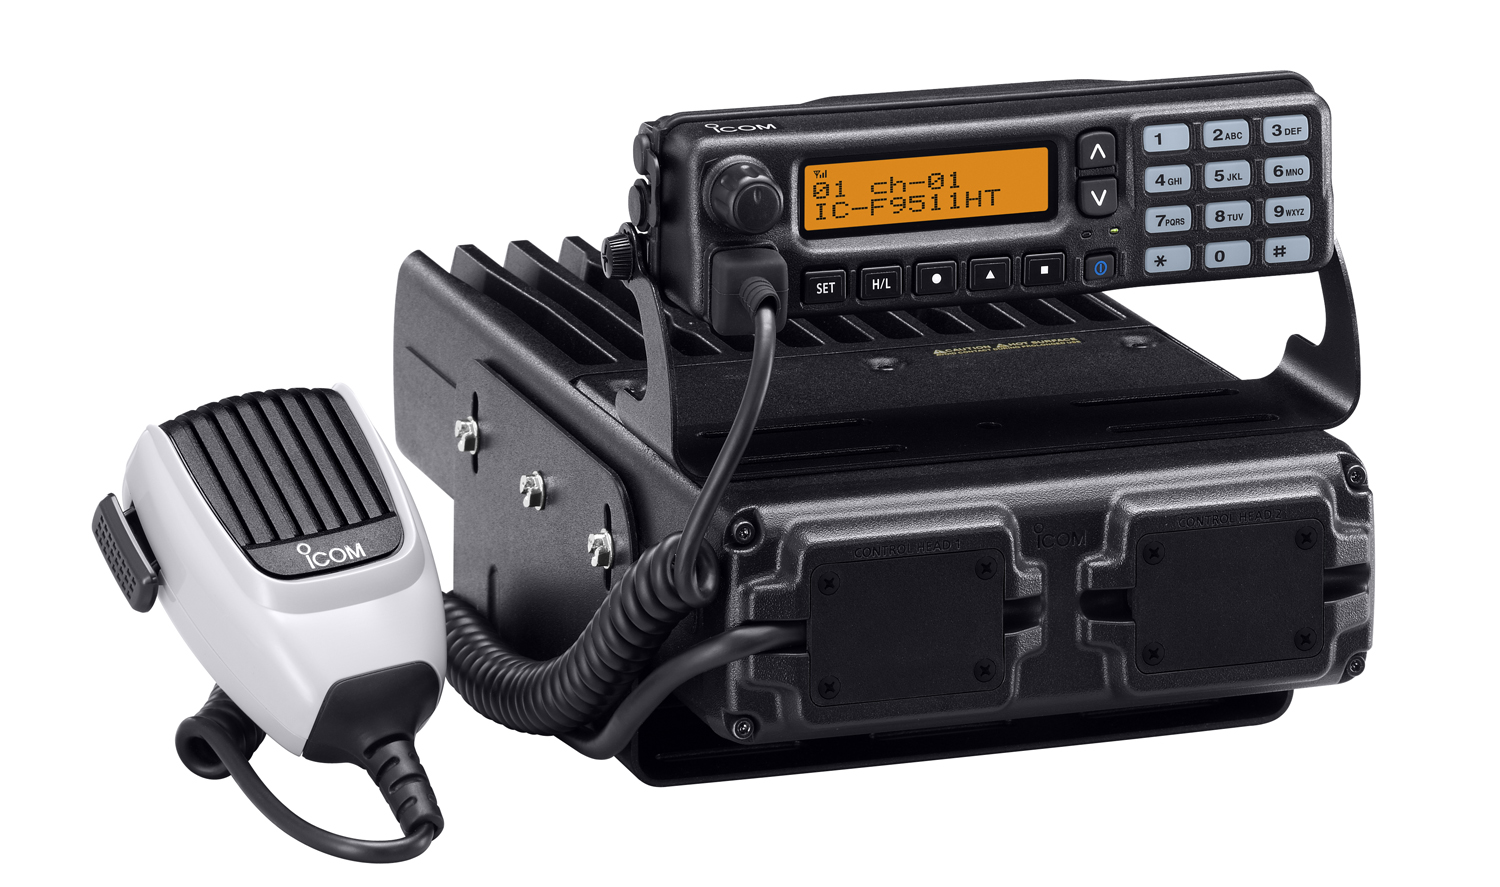 F9511ht Vhf P25 Conventional Trunked Transceiver Features Icom Wiring Diagram Product Brochure Version Chart Instruction Manual